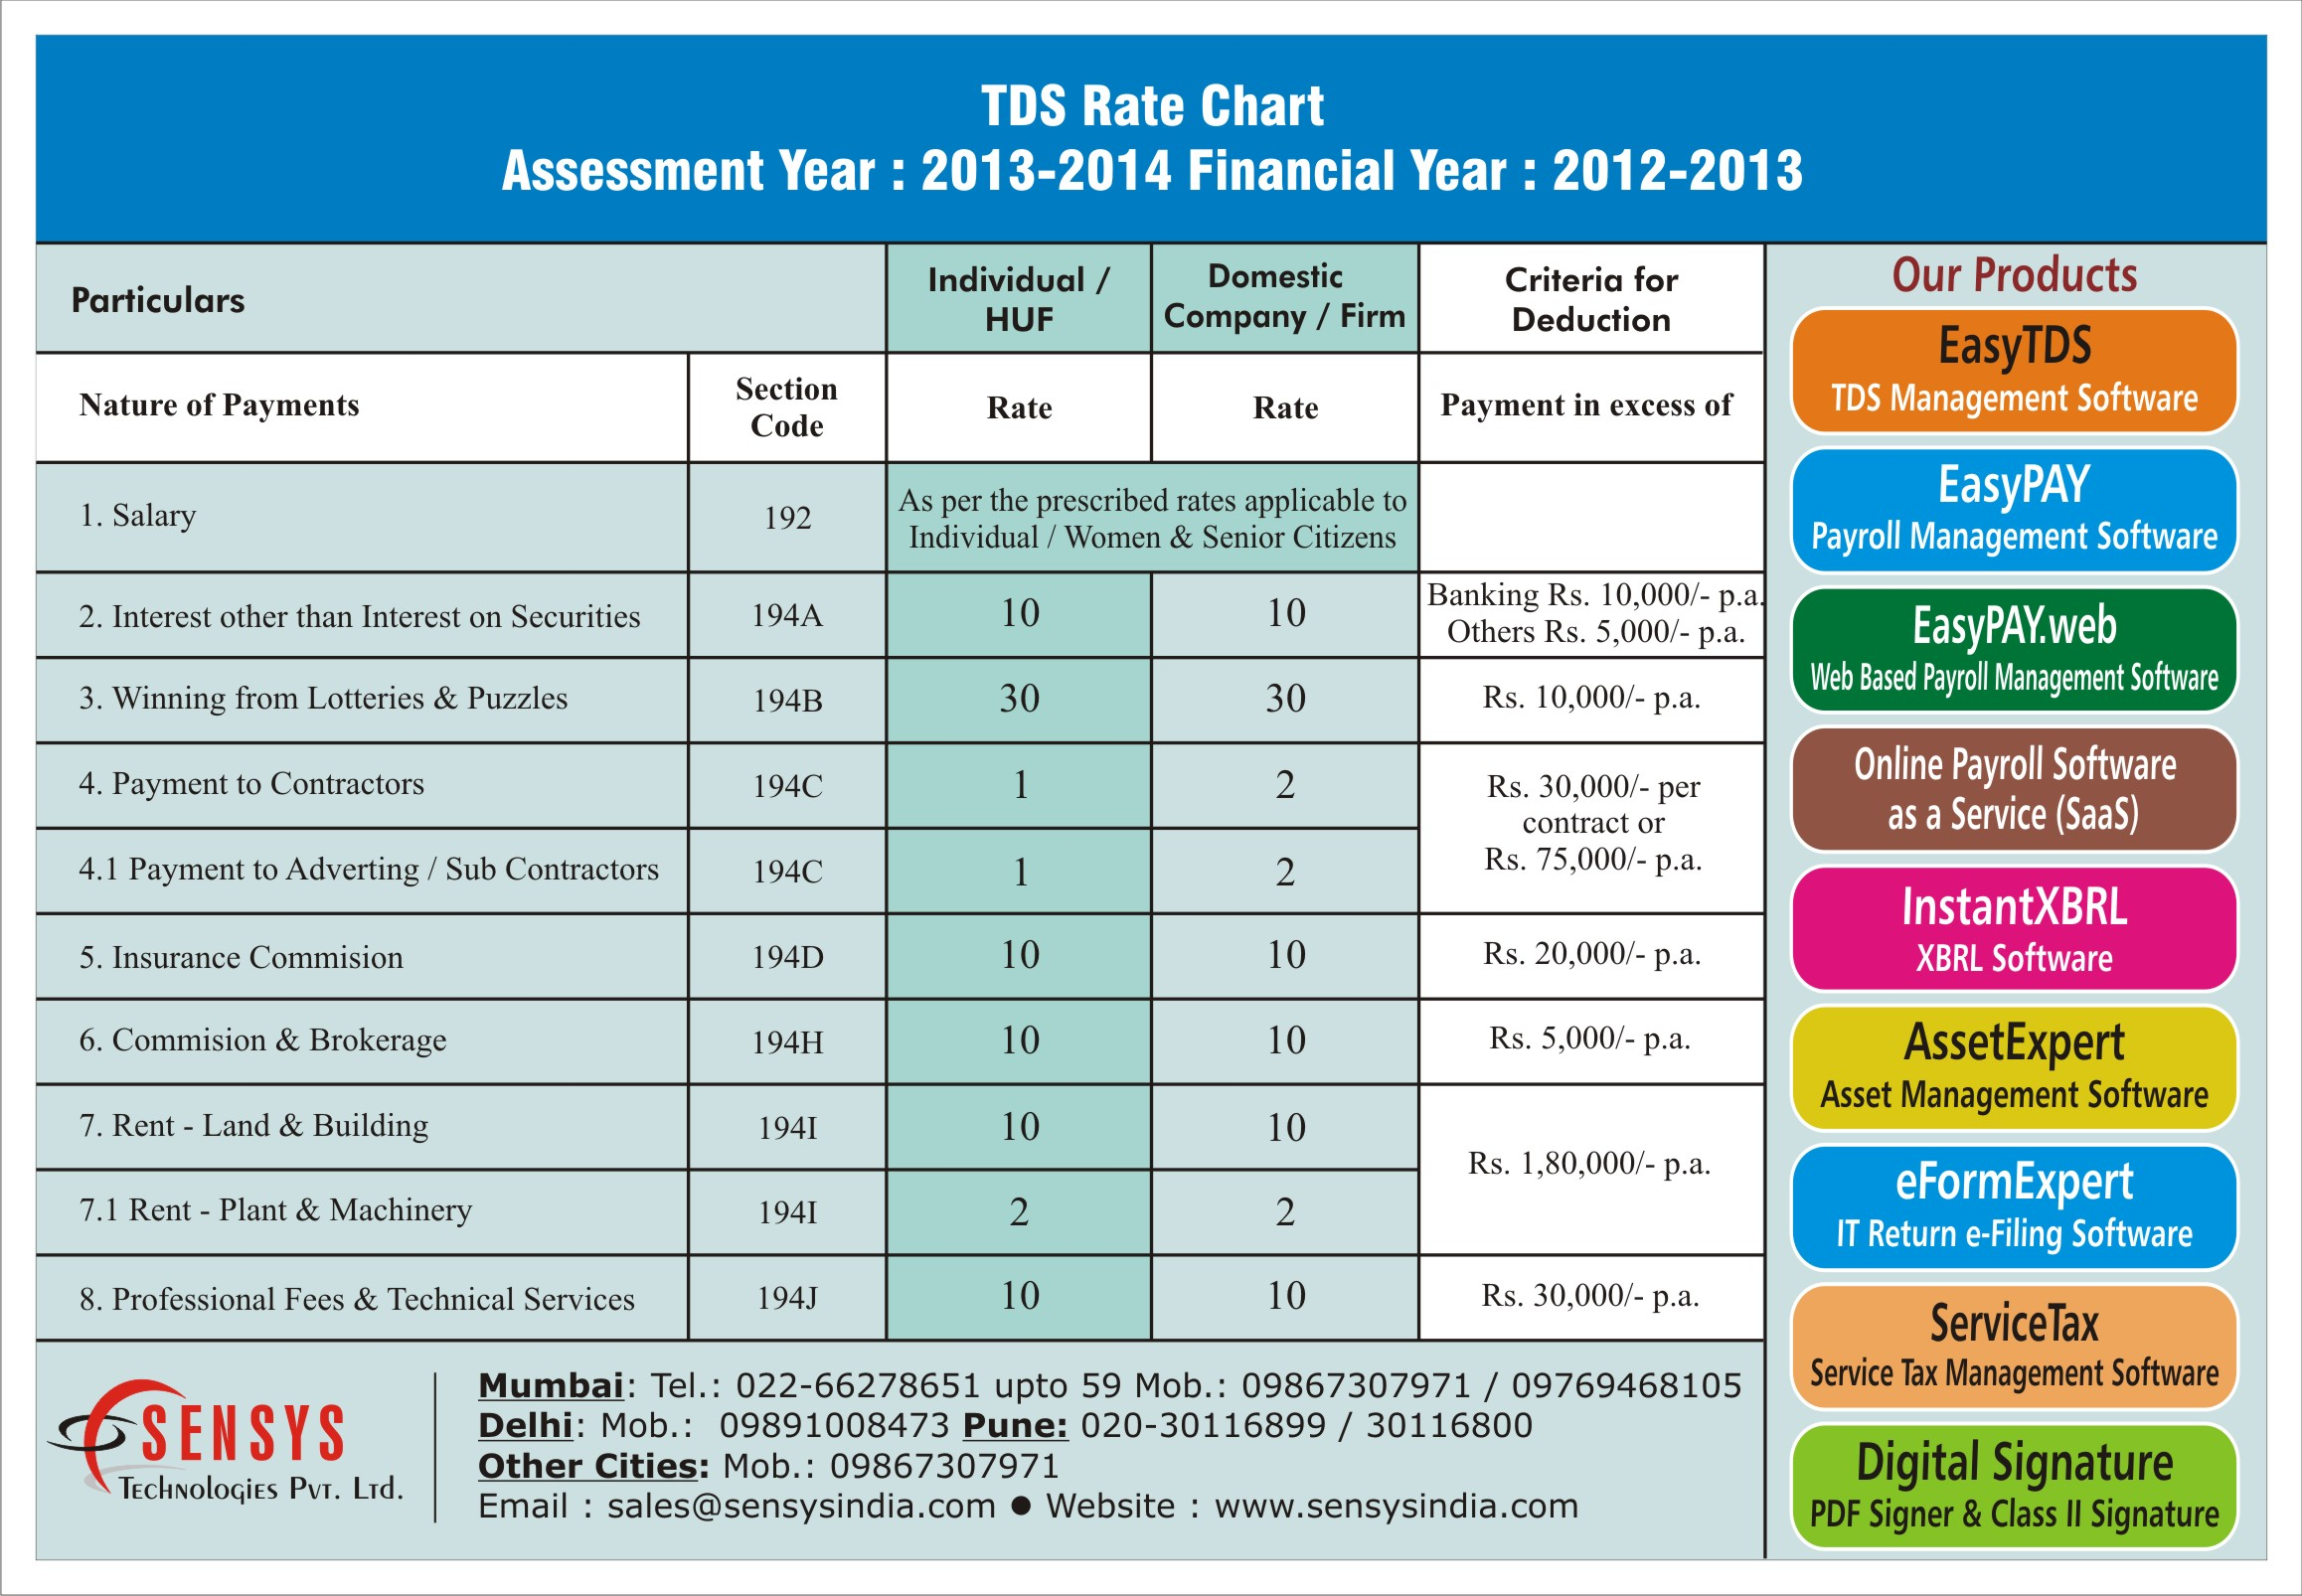 TDS Rate Chart Assessment Year 2013 2014